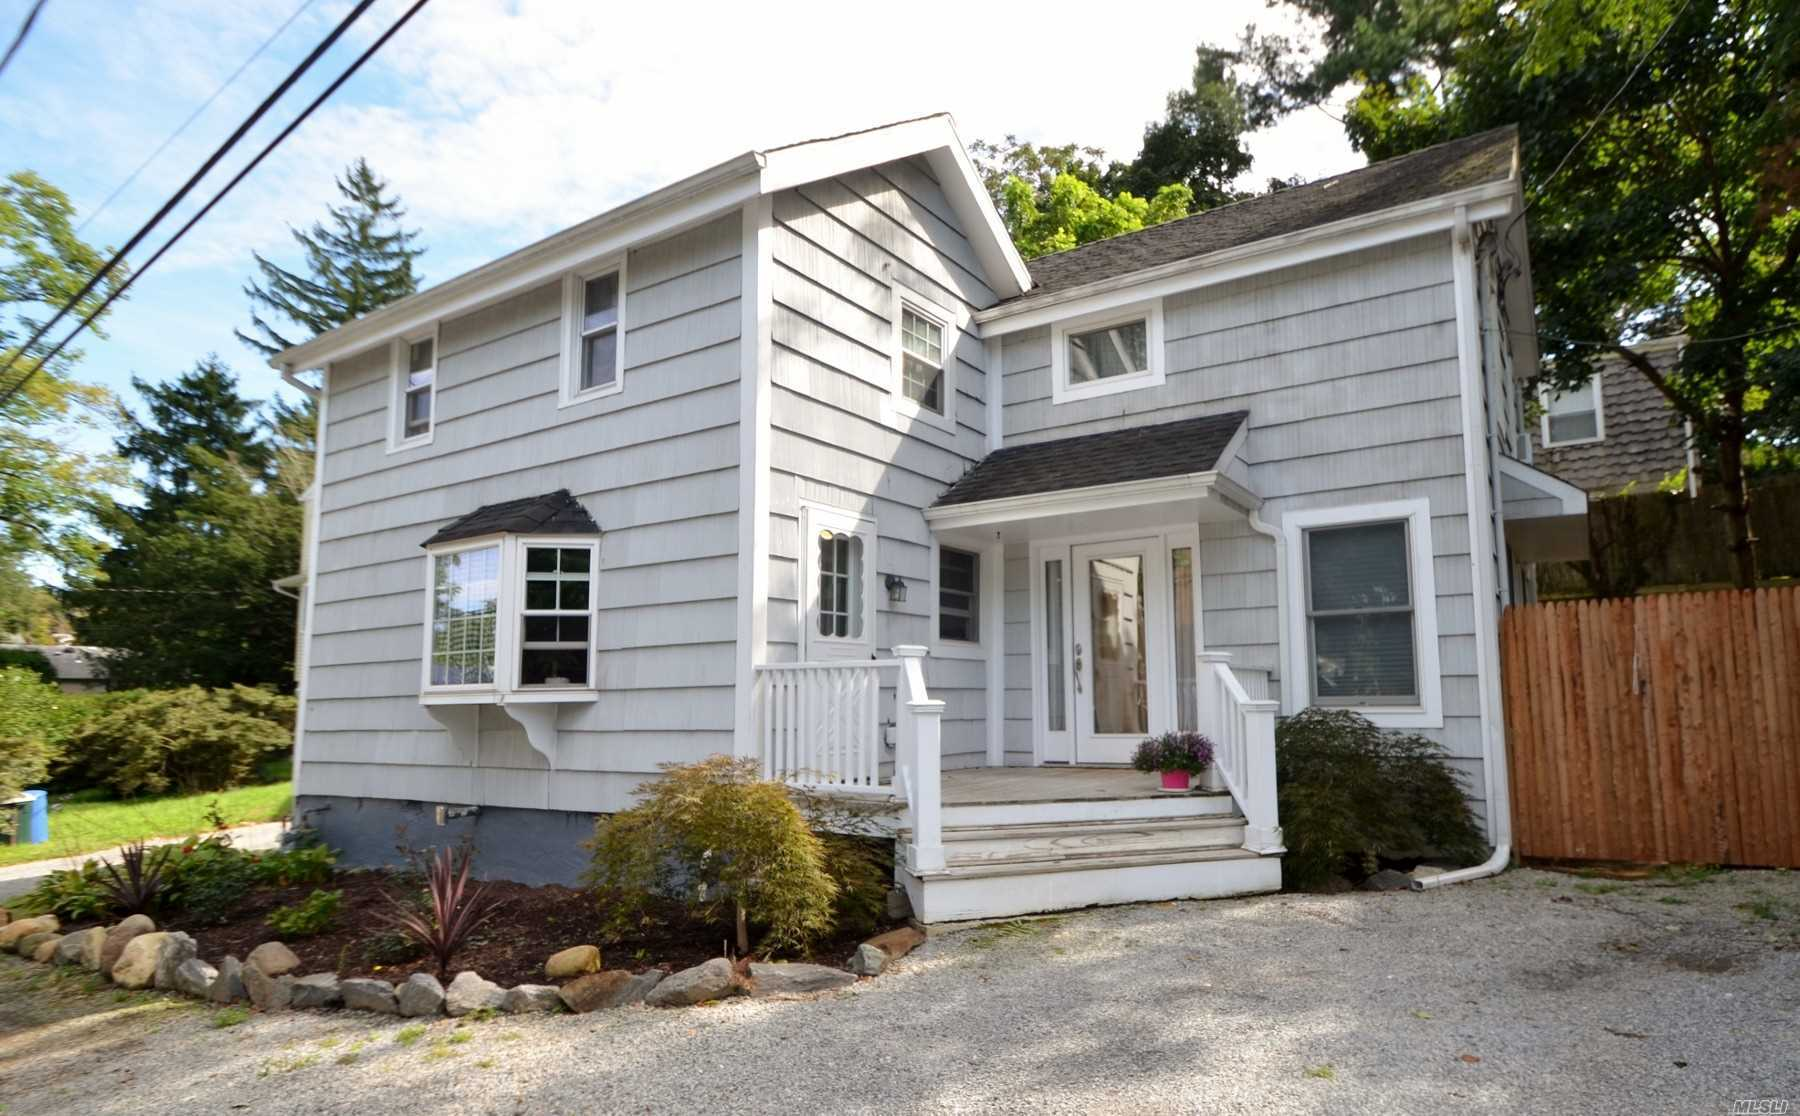 Charming Colonial On Quiet Cul-De-Sac! Eik, Fdr With French Doors To Lr, Sliding Doors To Deck & Yard, Full Bath. 2nd Floor; 3 Bdrms & Full Bath. Full Unfinished Basement W/Washer/Dryer, & Utilities. New Roof 2004, Anderson Windows, New Appliances. Award Winning North Shore Schools! Close To Beach. A Must See!!